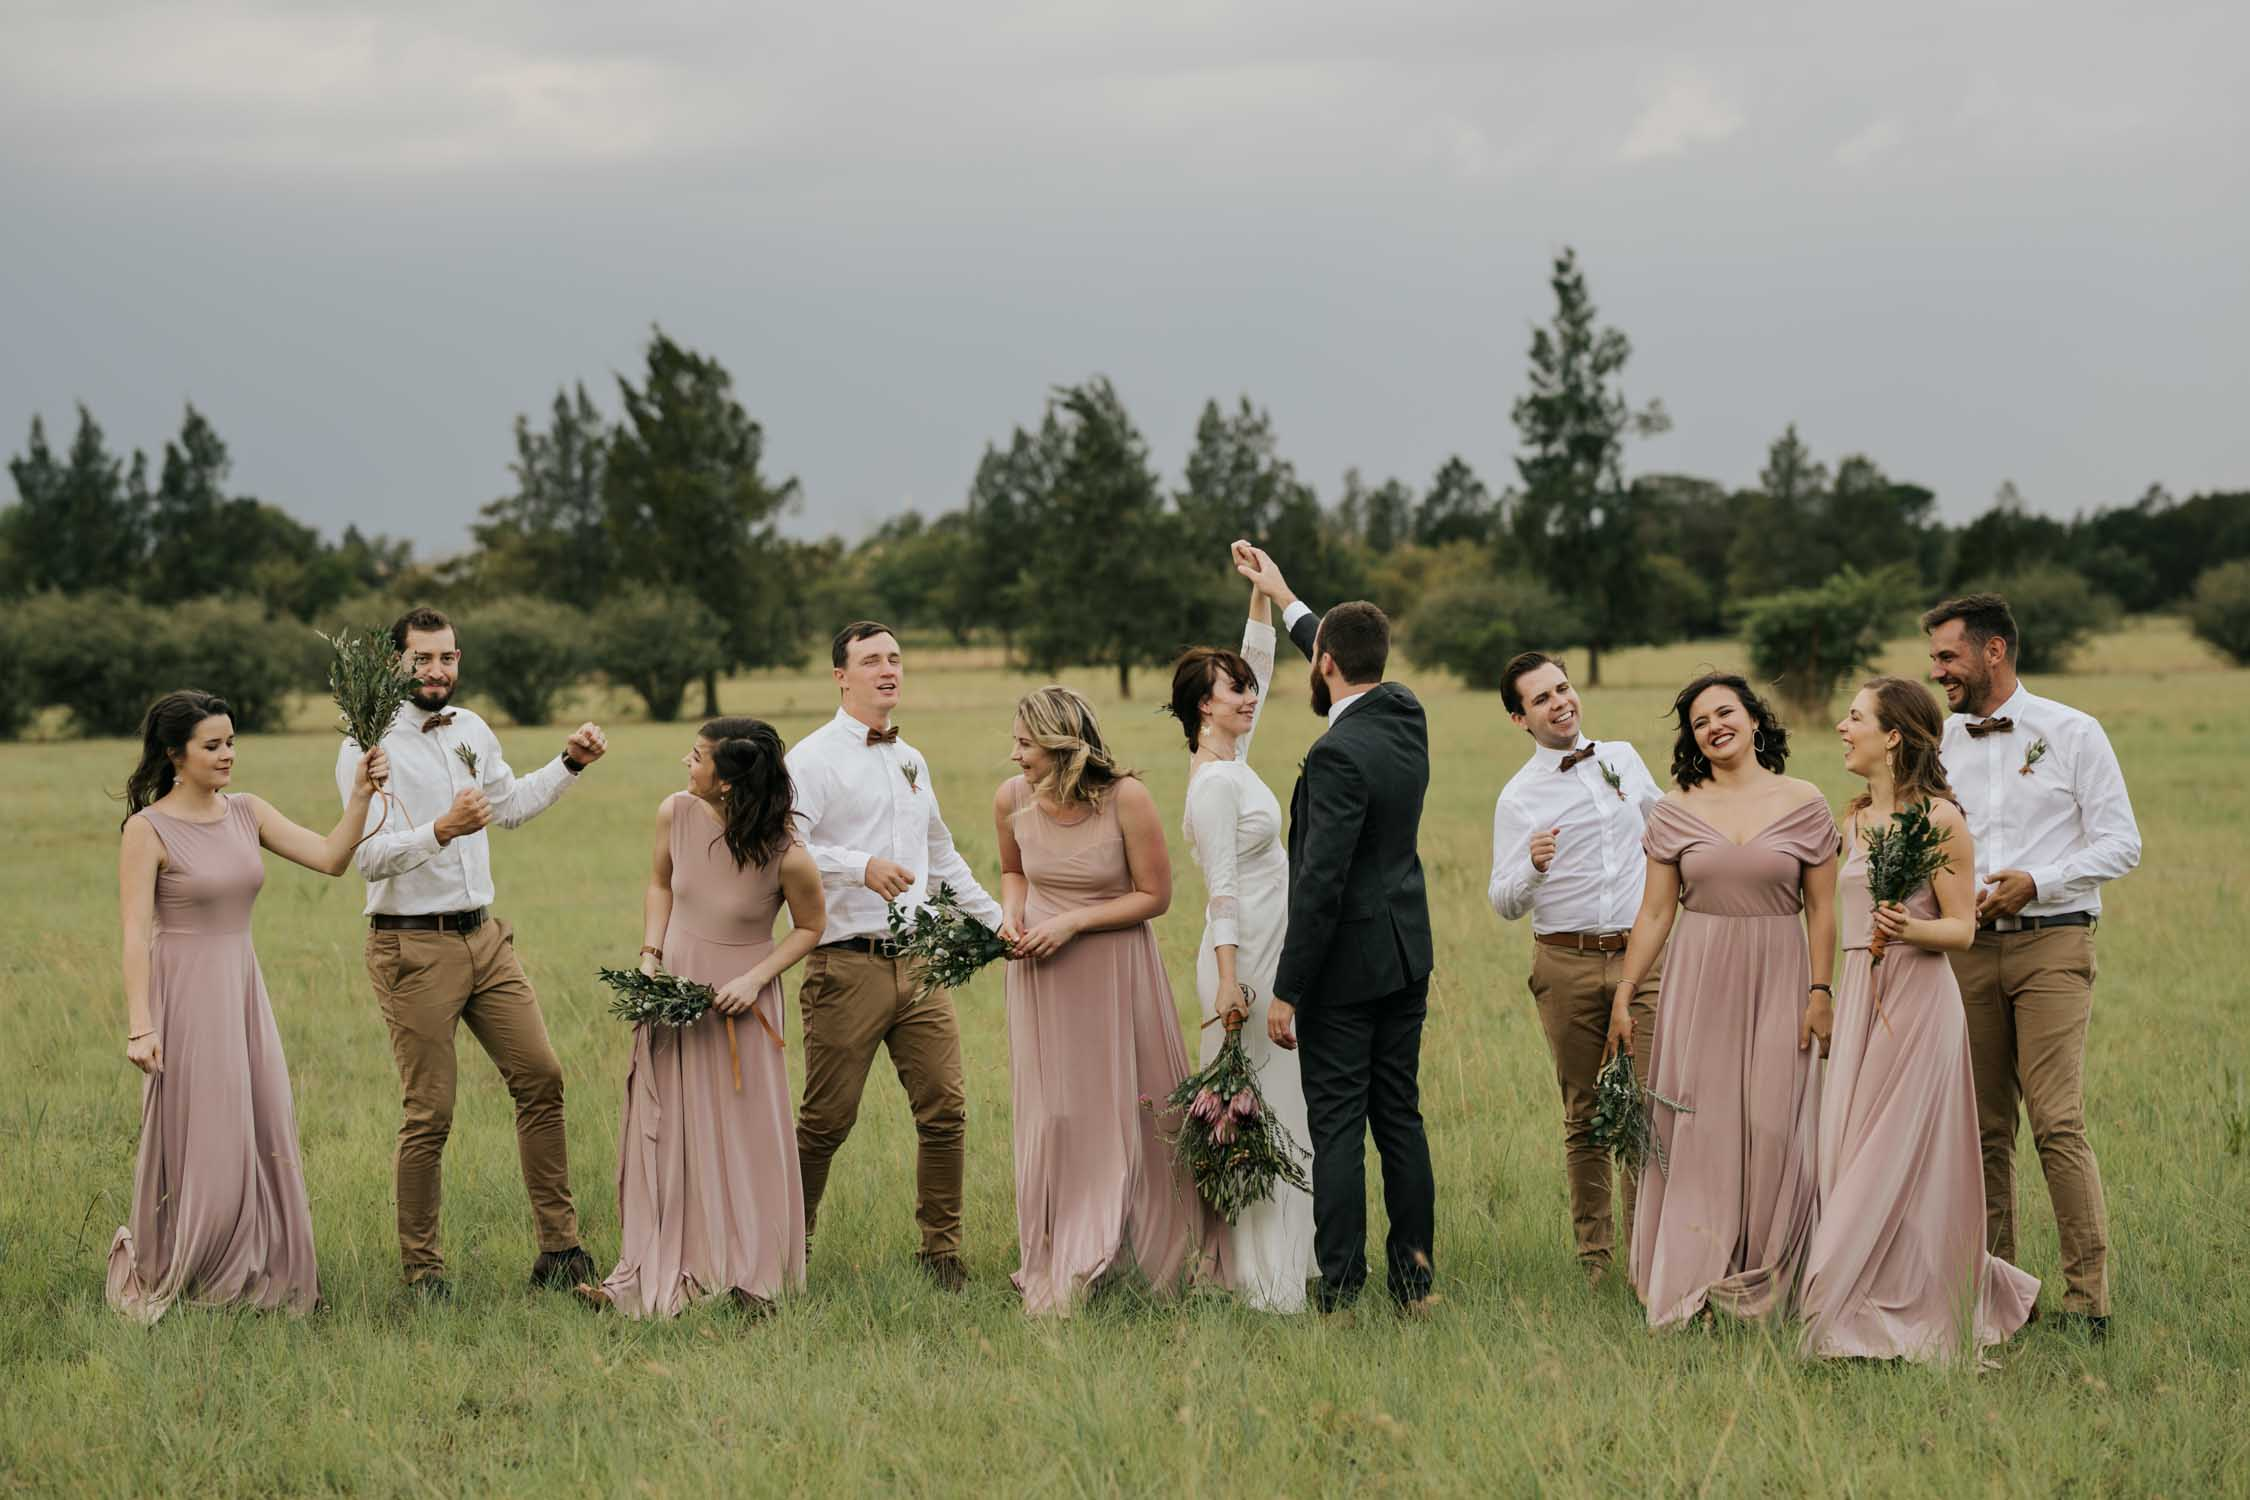 Fun different natural retinue photo of bridal party dancing together in a field